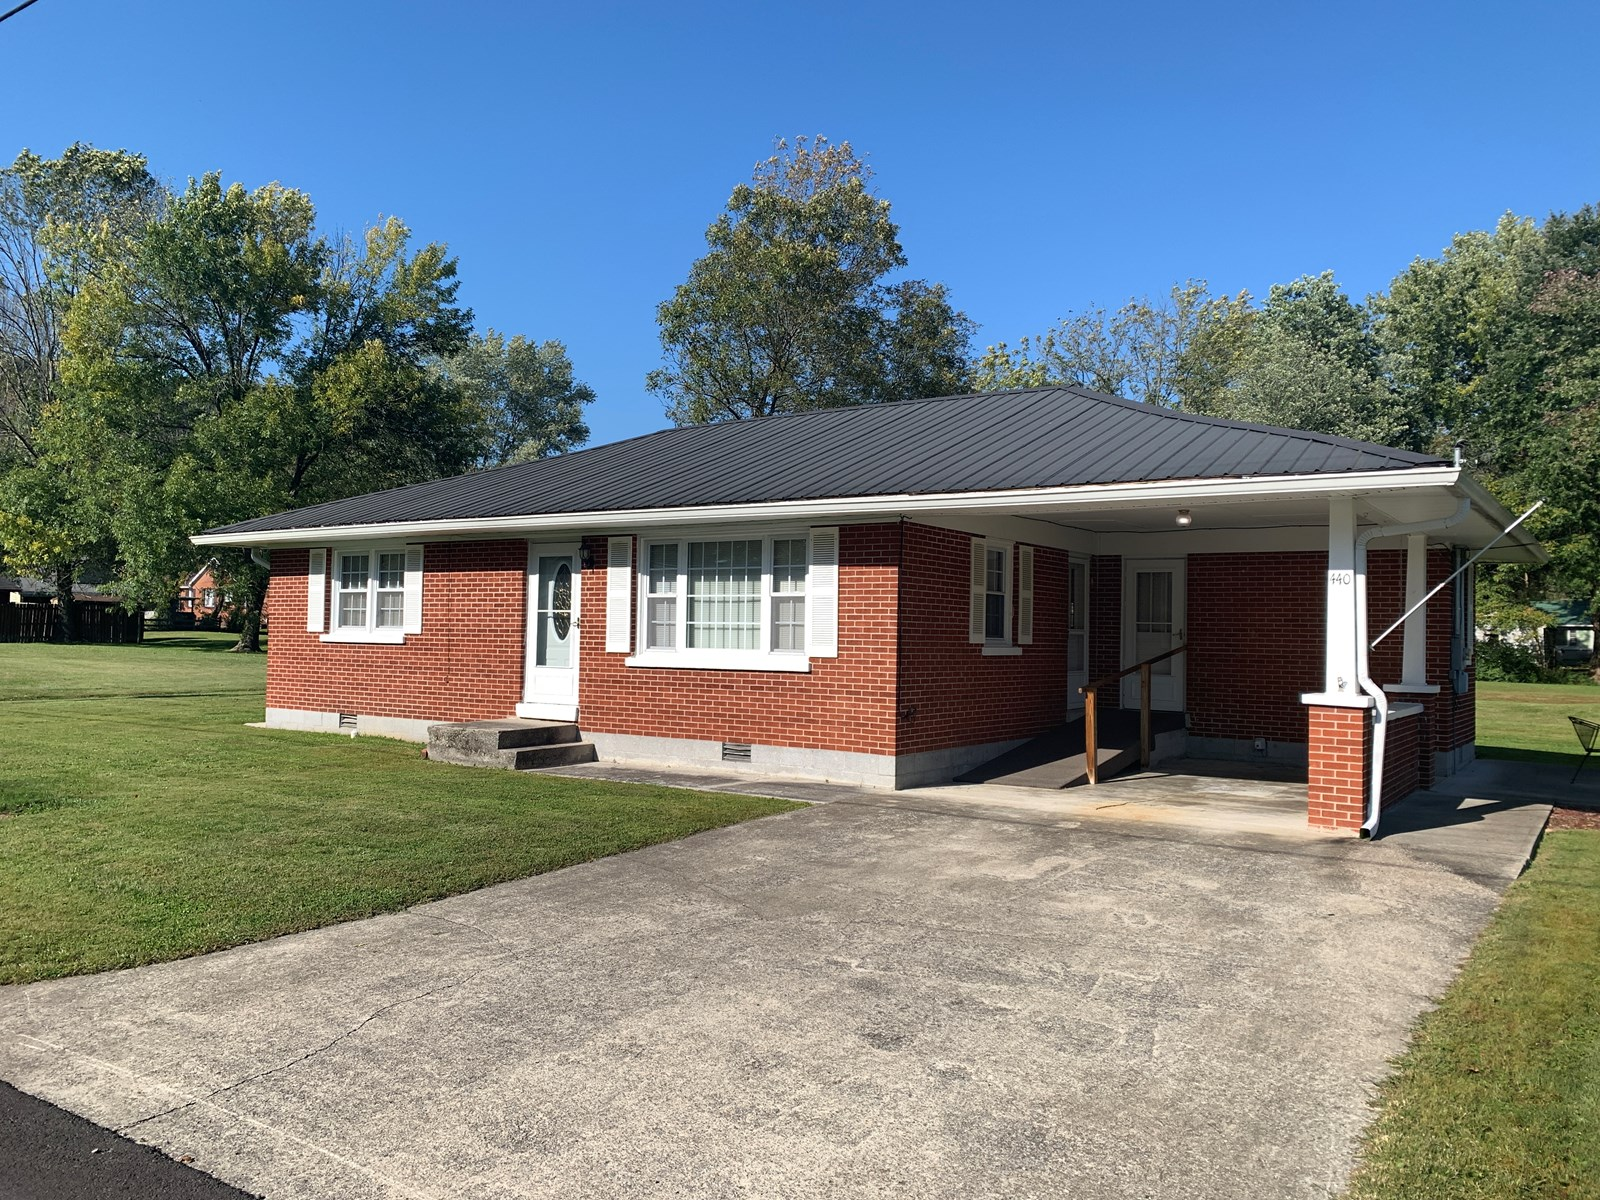 BRICK HOME IN TOWN-MOVE IN READY-CITY UTILITIES-LIBERTY, KY.